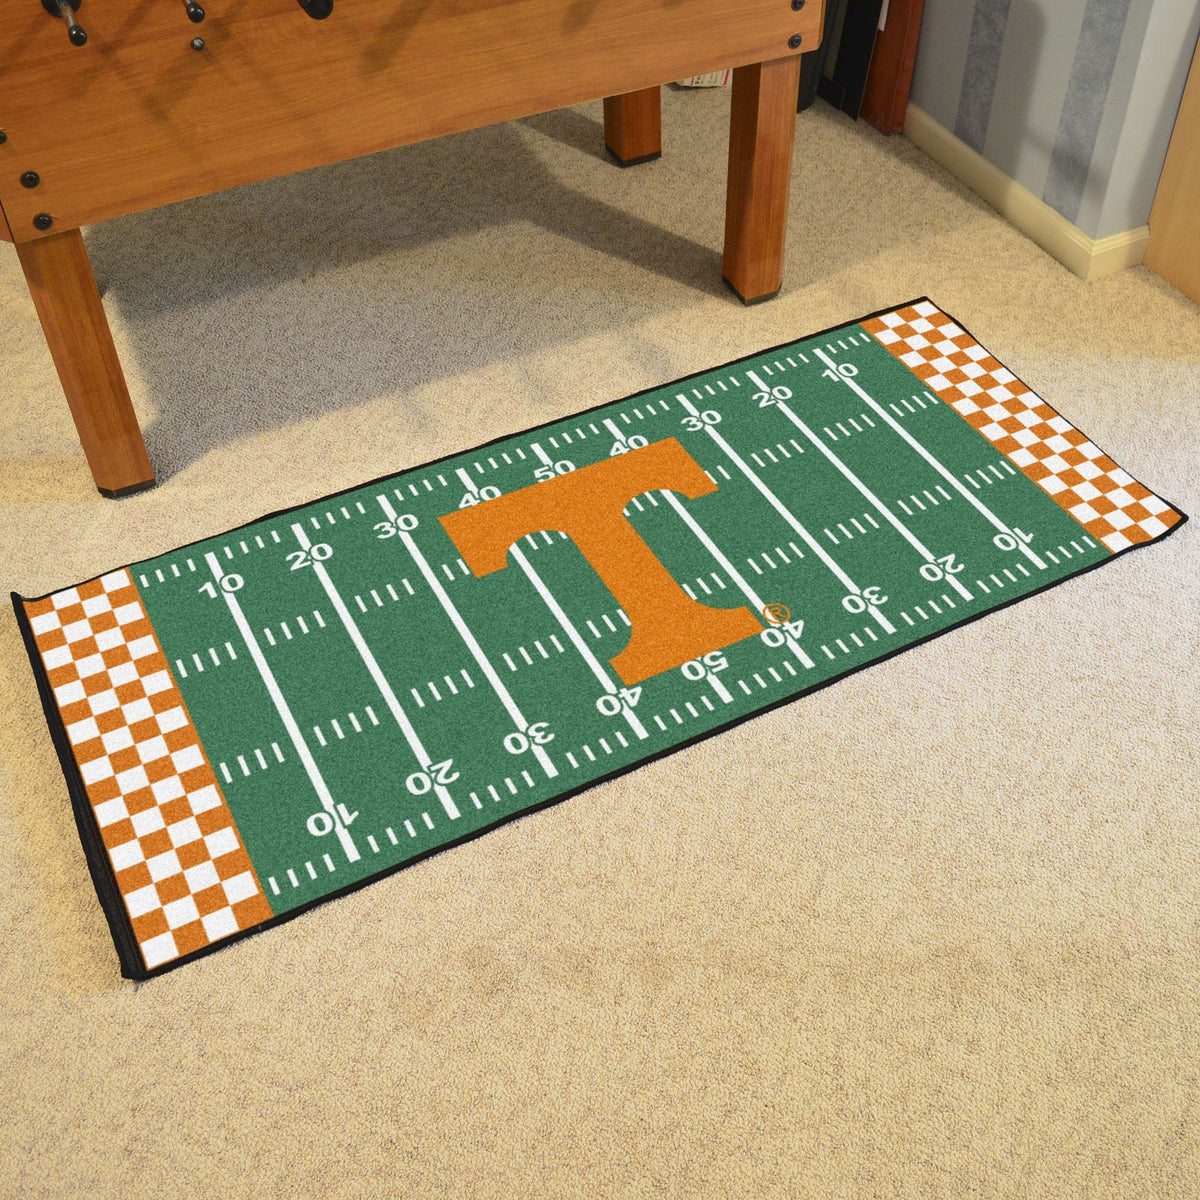 Collegiate - Football Field Runner Collegiate Mats, Rectangular Mats, Football Field Runner, Collegiate, Home Fan Mats Tennessee